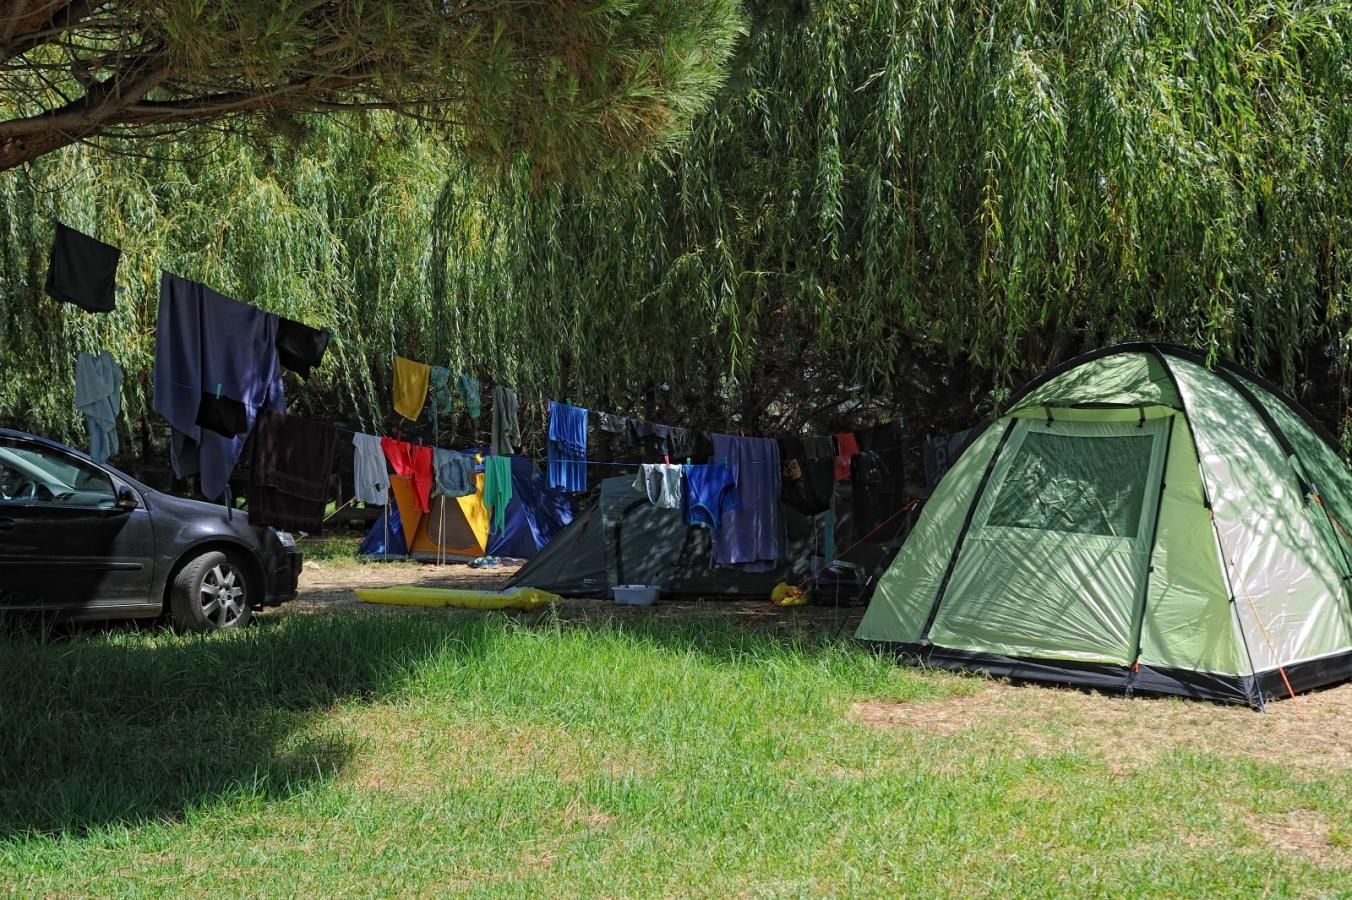 Establishment Camping De La Plage - Algajola